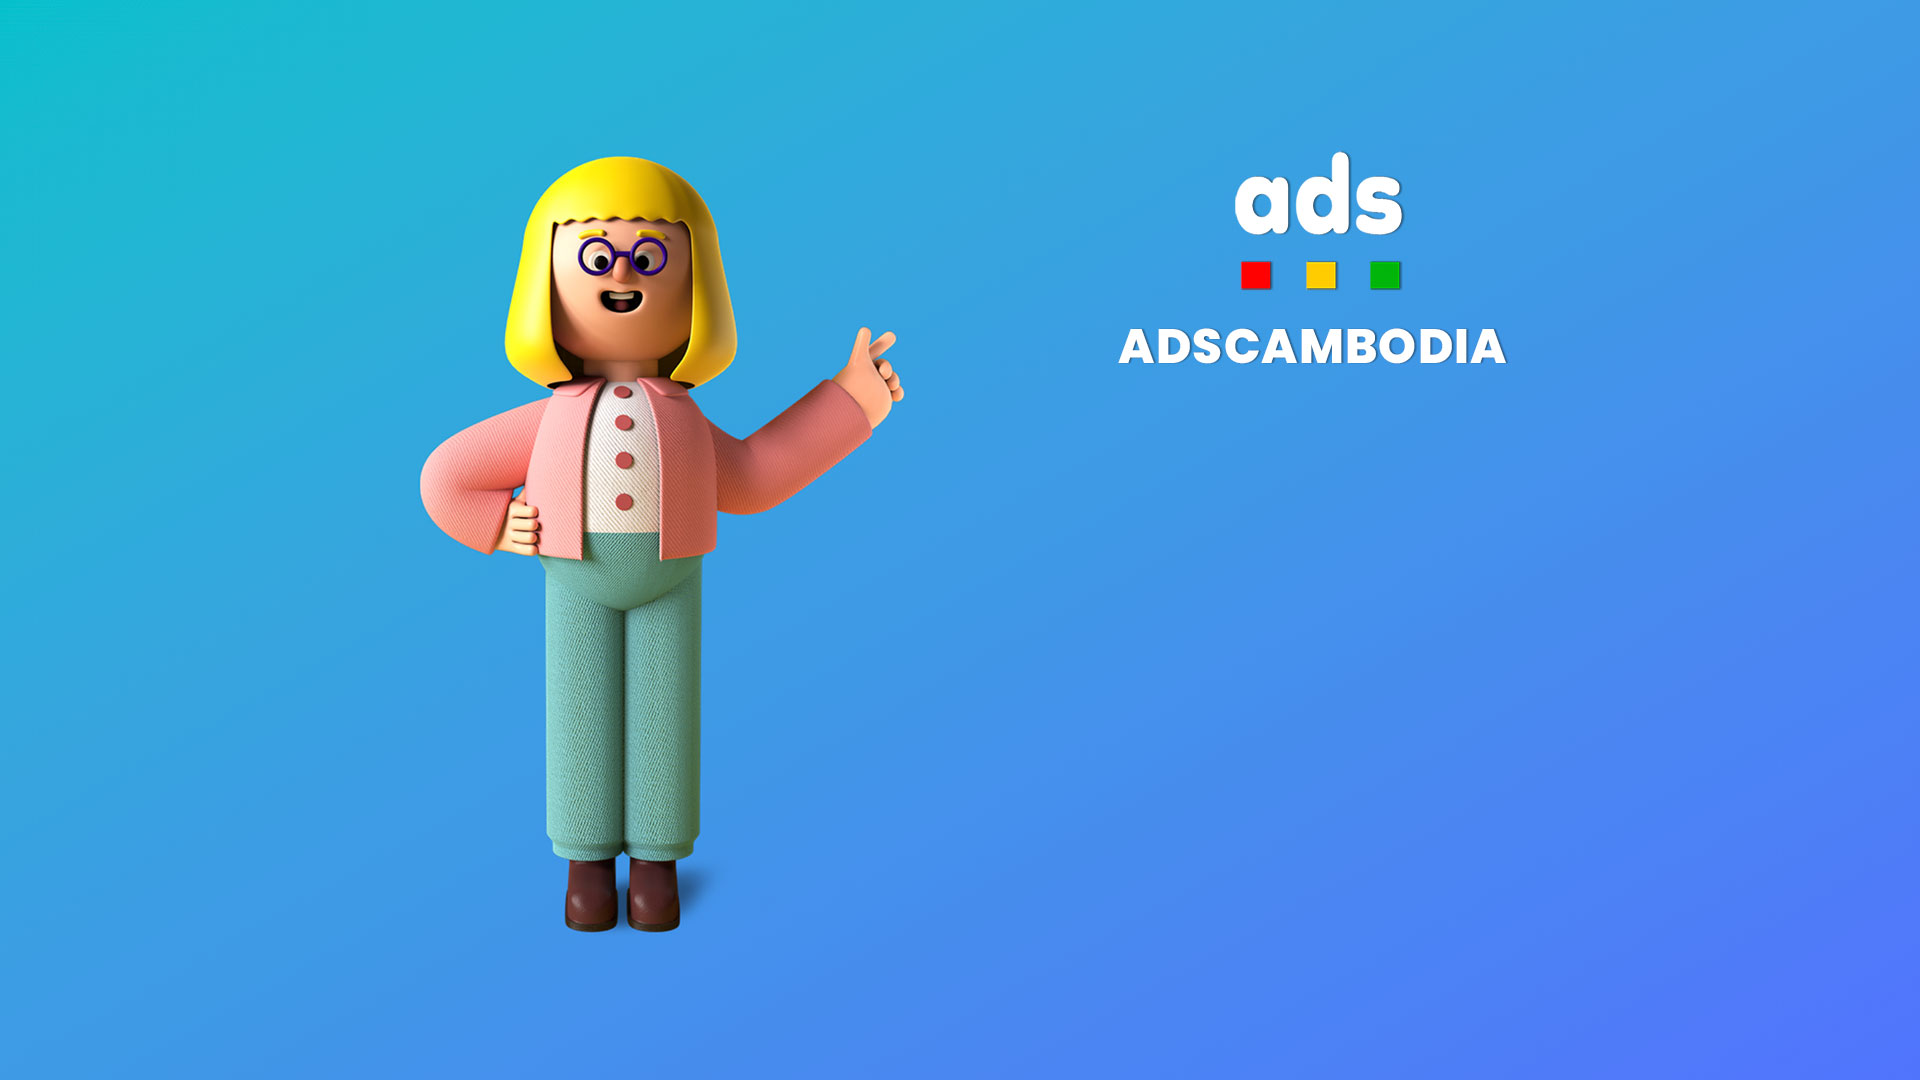 Terms of Use - ADSCambodia